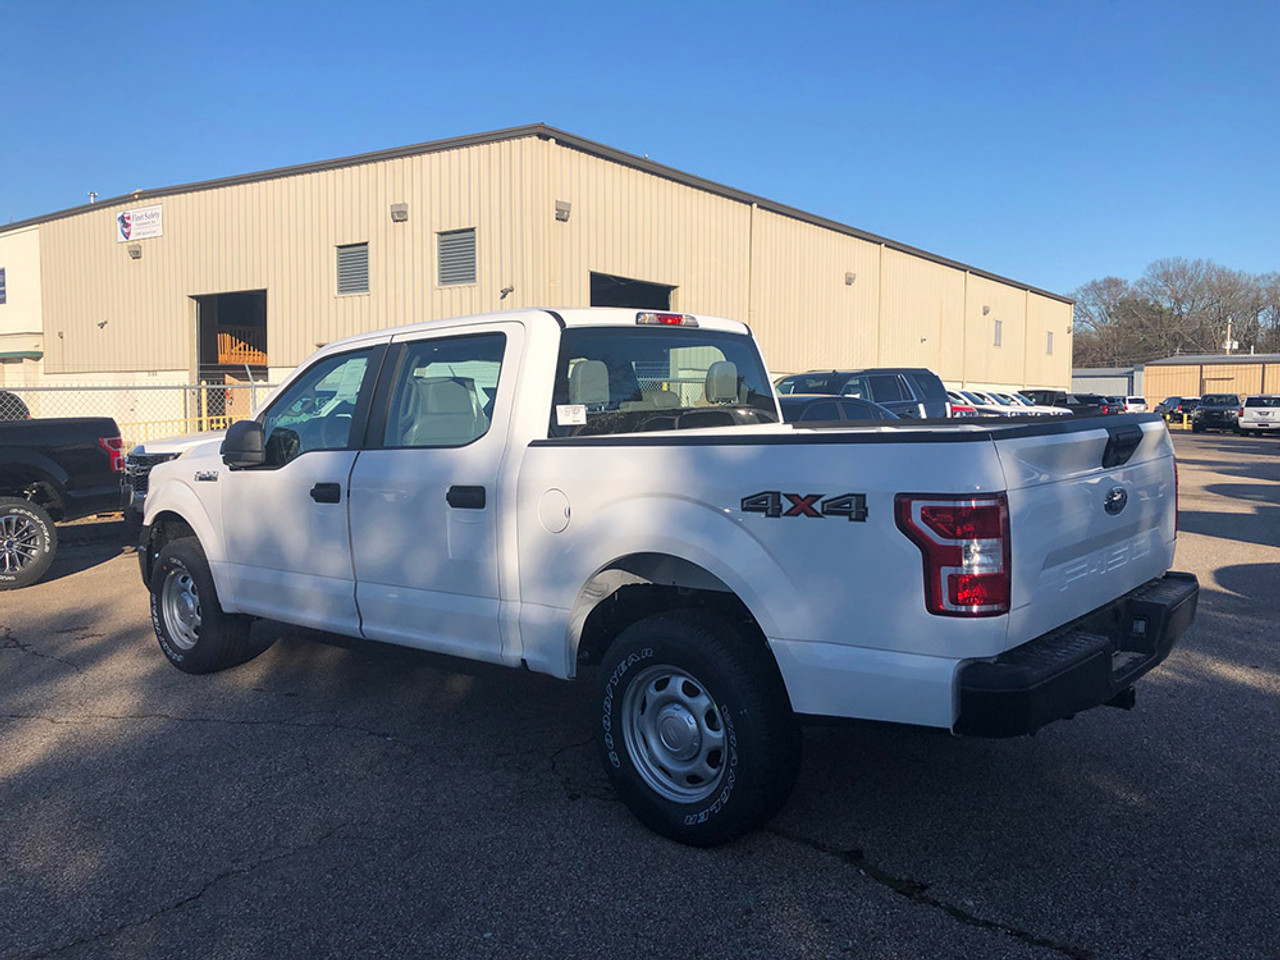 New 2021 Ford F-150 White 4x4 SSV V6 Special Service Truck, ready to be built as a Marked Patrol Package, choose any color LED Lights, + Delivery